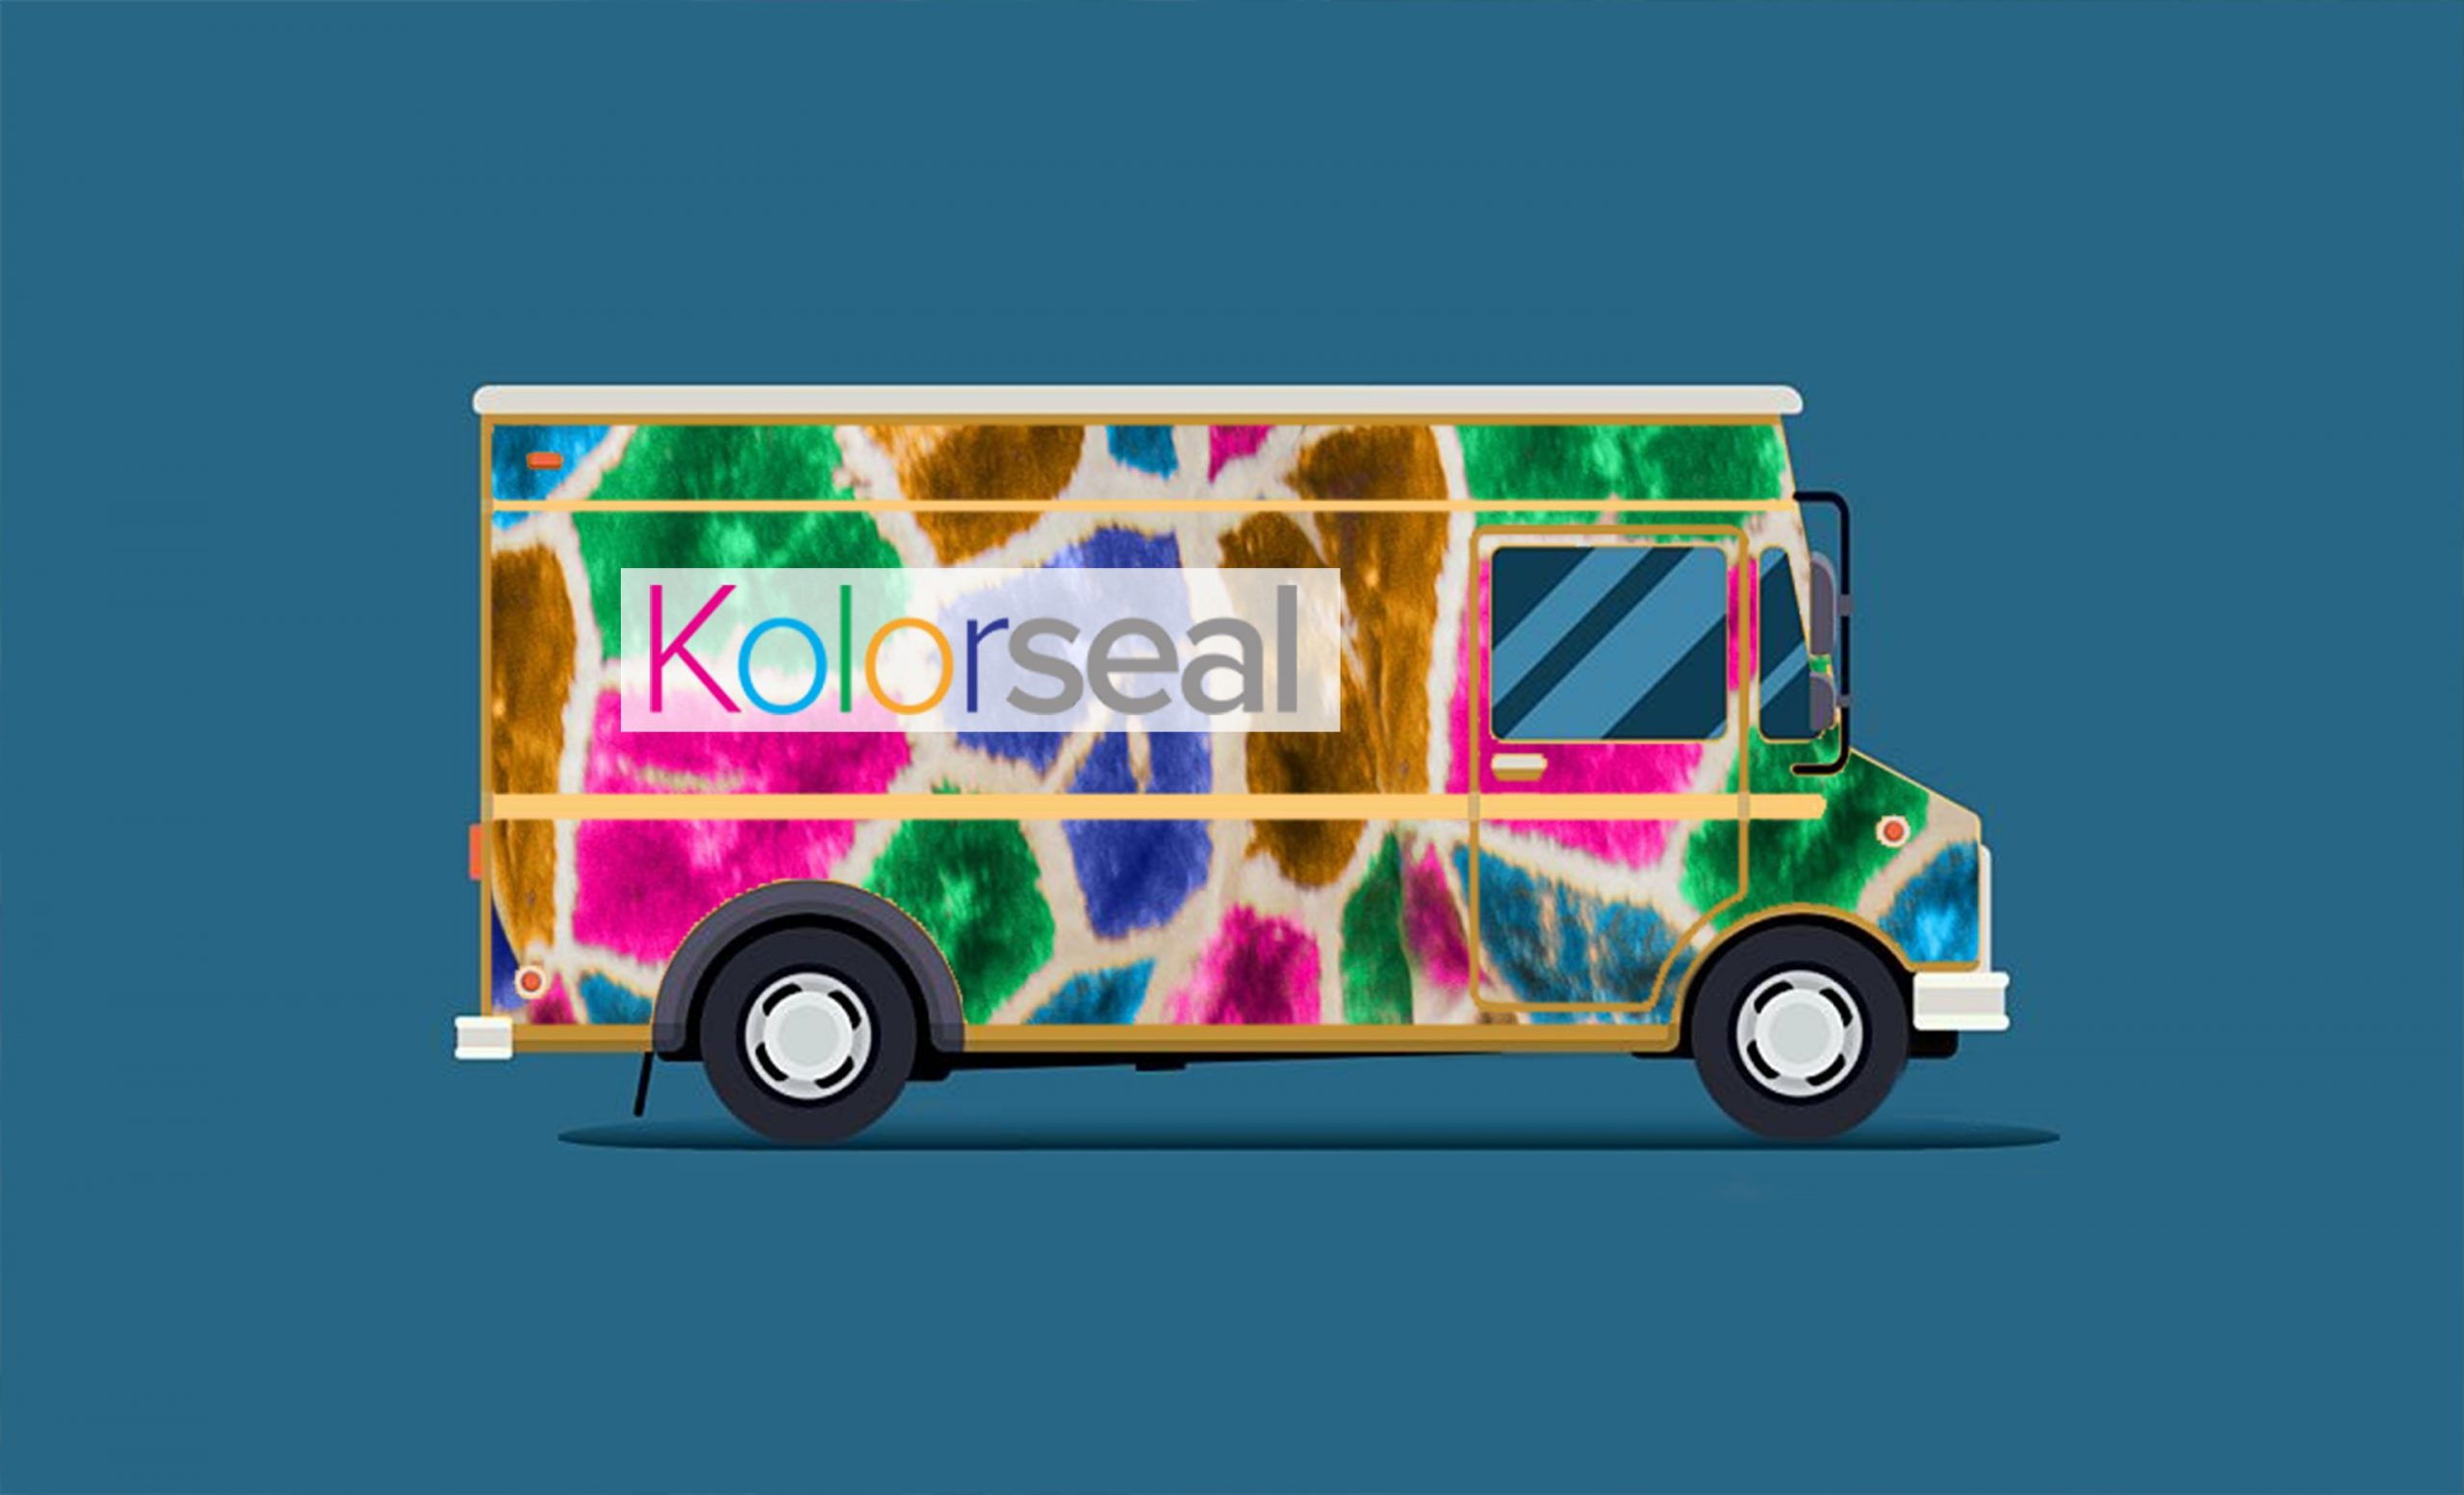 It's the Kolorseal van making a delivery.